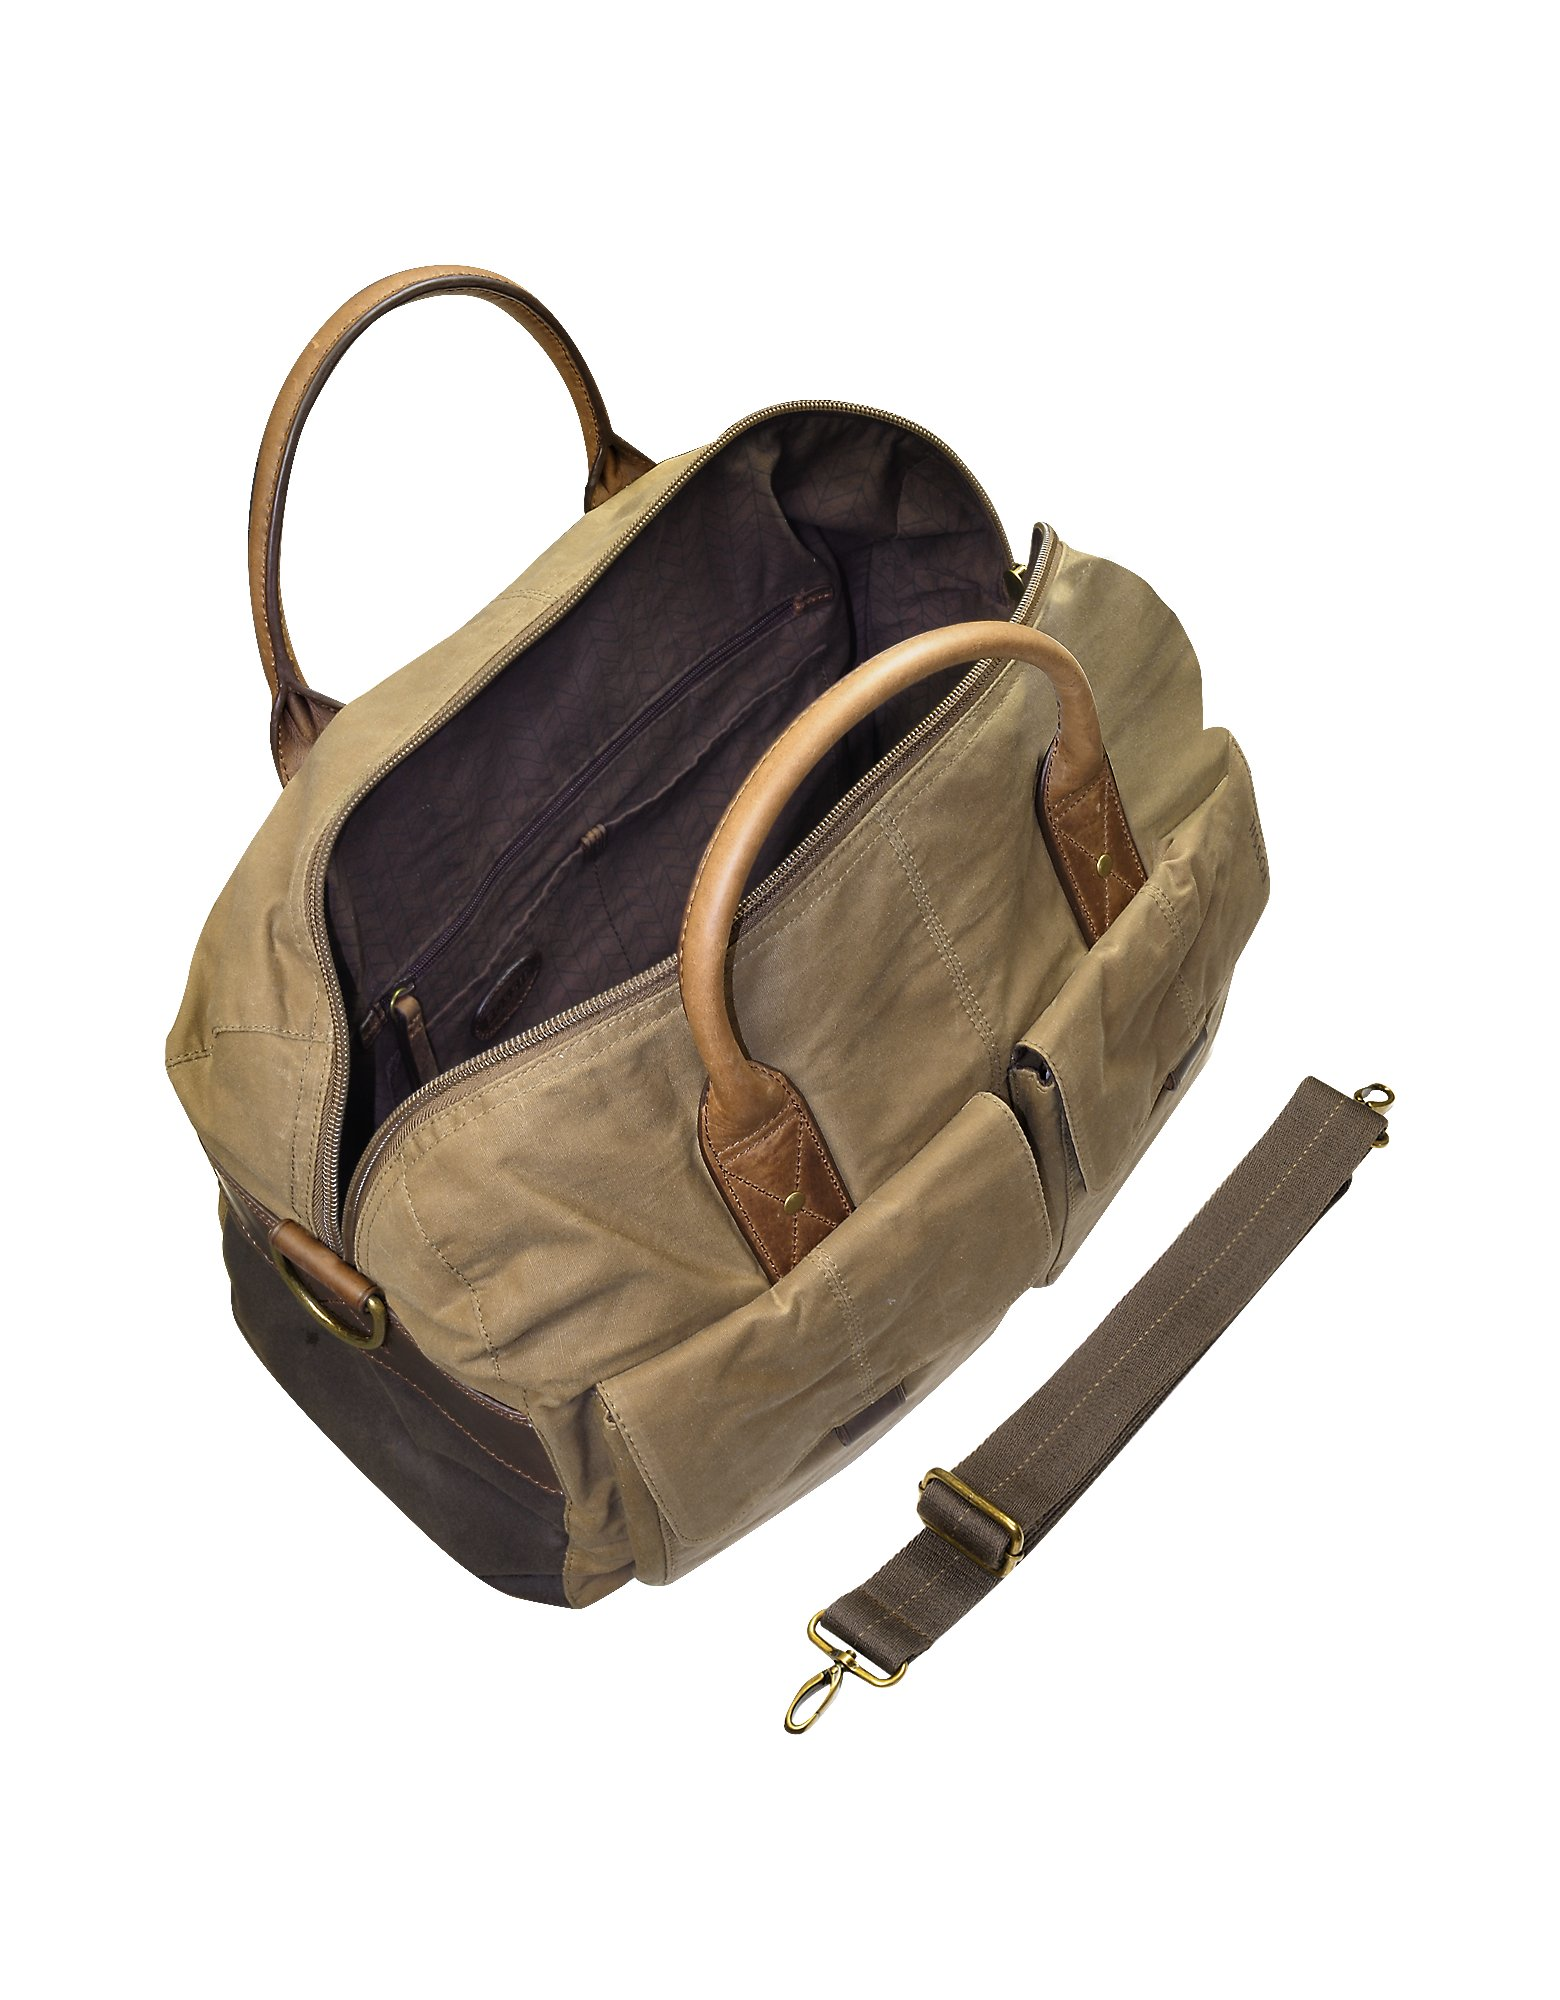 dfac9c7e261c Lyst - Fossil Wagner - Brown Canvas Duffle Bag in Brown for Men